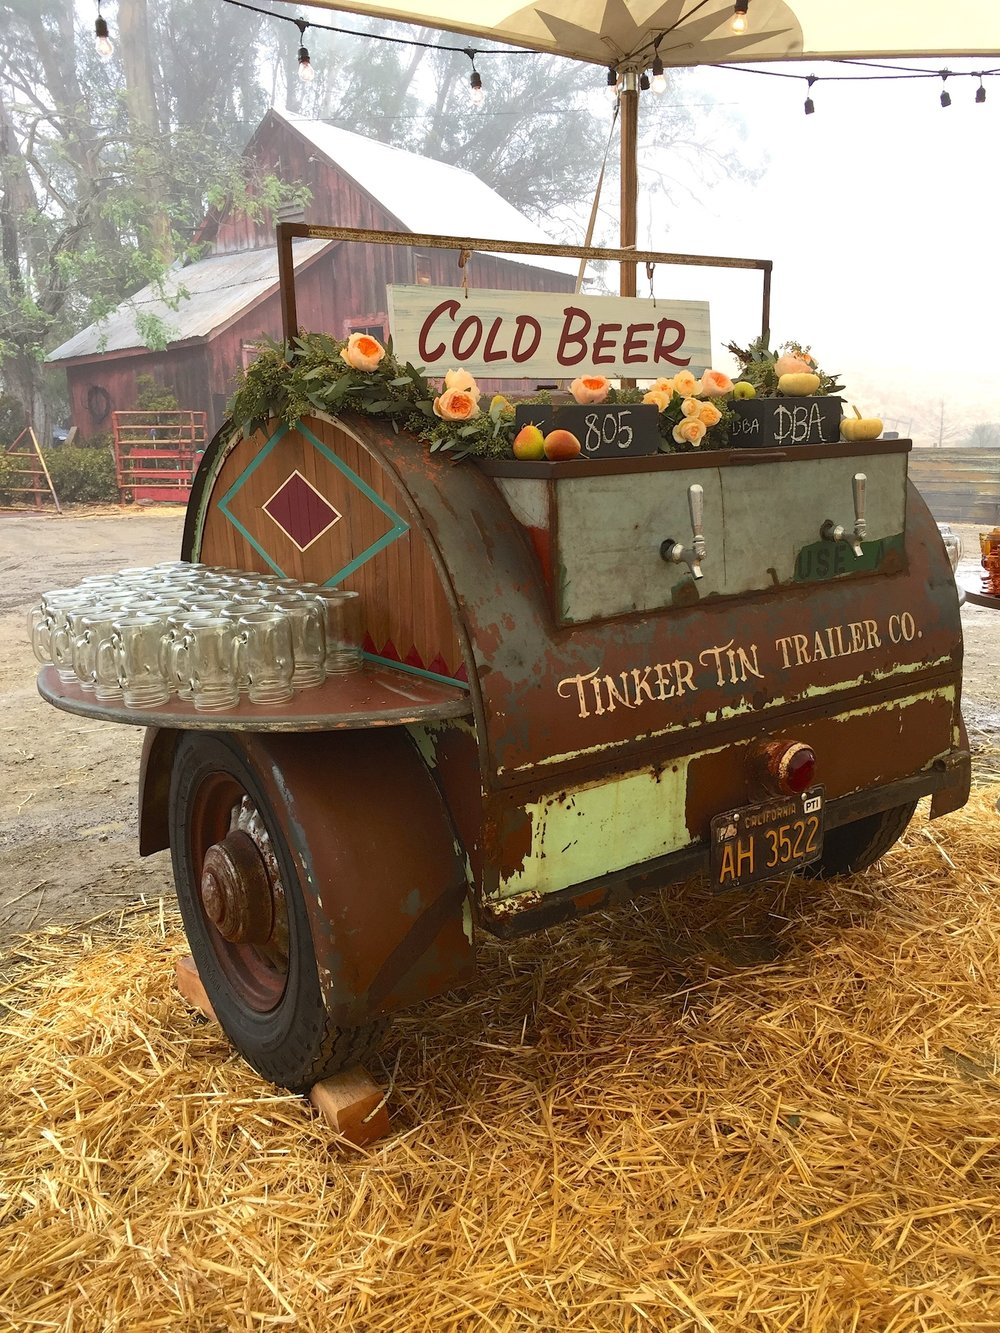 "This rare 1948 Barrel is one of only 3 known to exist! We converted this unique camper into a one-of-a kind ""serve yourself"" style beer trailer complete with 2 tap handles, holding capacity for 2 full size kegs, built-in ice chest on tongue of trailer for grab-n-go beverages, and drop down shelving on the side of the trailer perfect for placing glassware or drink dispensers!"